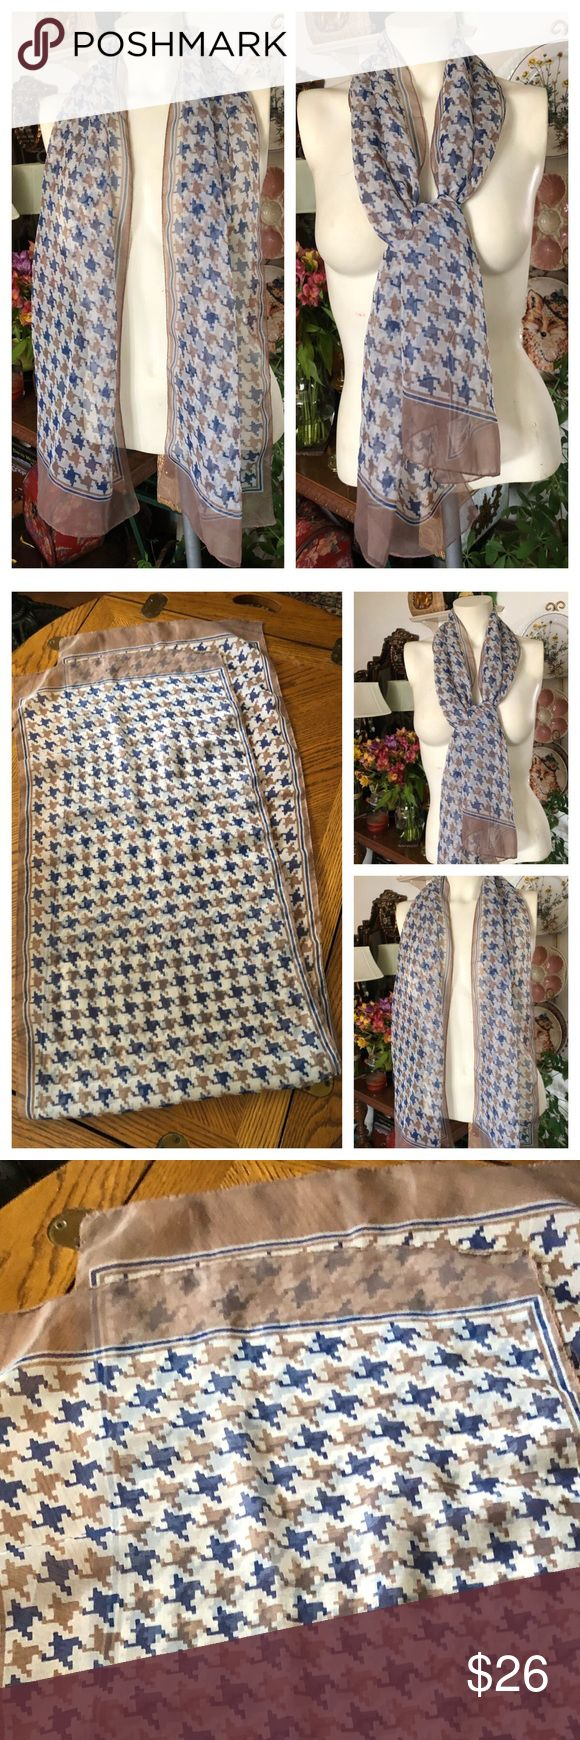 """Vintage Silk Chiffon Houndstooth Print Scarf This totally awesome vintage long scarf is in a taupe and blue houndstooth print with a creamy white background. Maker/fabric tag cut off so not to show through the sheerness ~ believe fabric to be silk chiffon. Measures 15"""" x 61"""".  In excellent preowned vintage condition. Smoke-free home. Vintage Accessories Scarves & Wraps"""